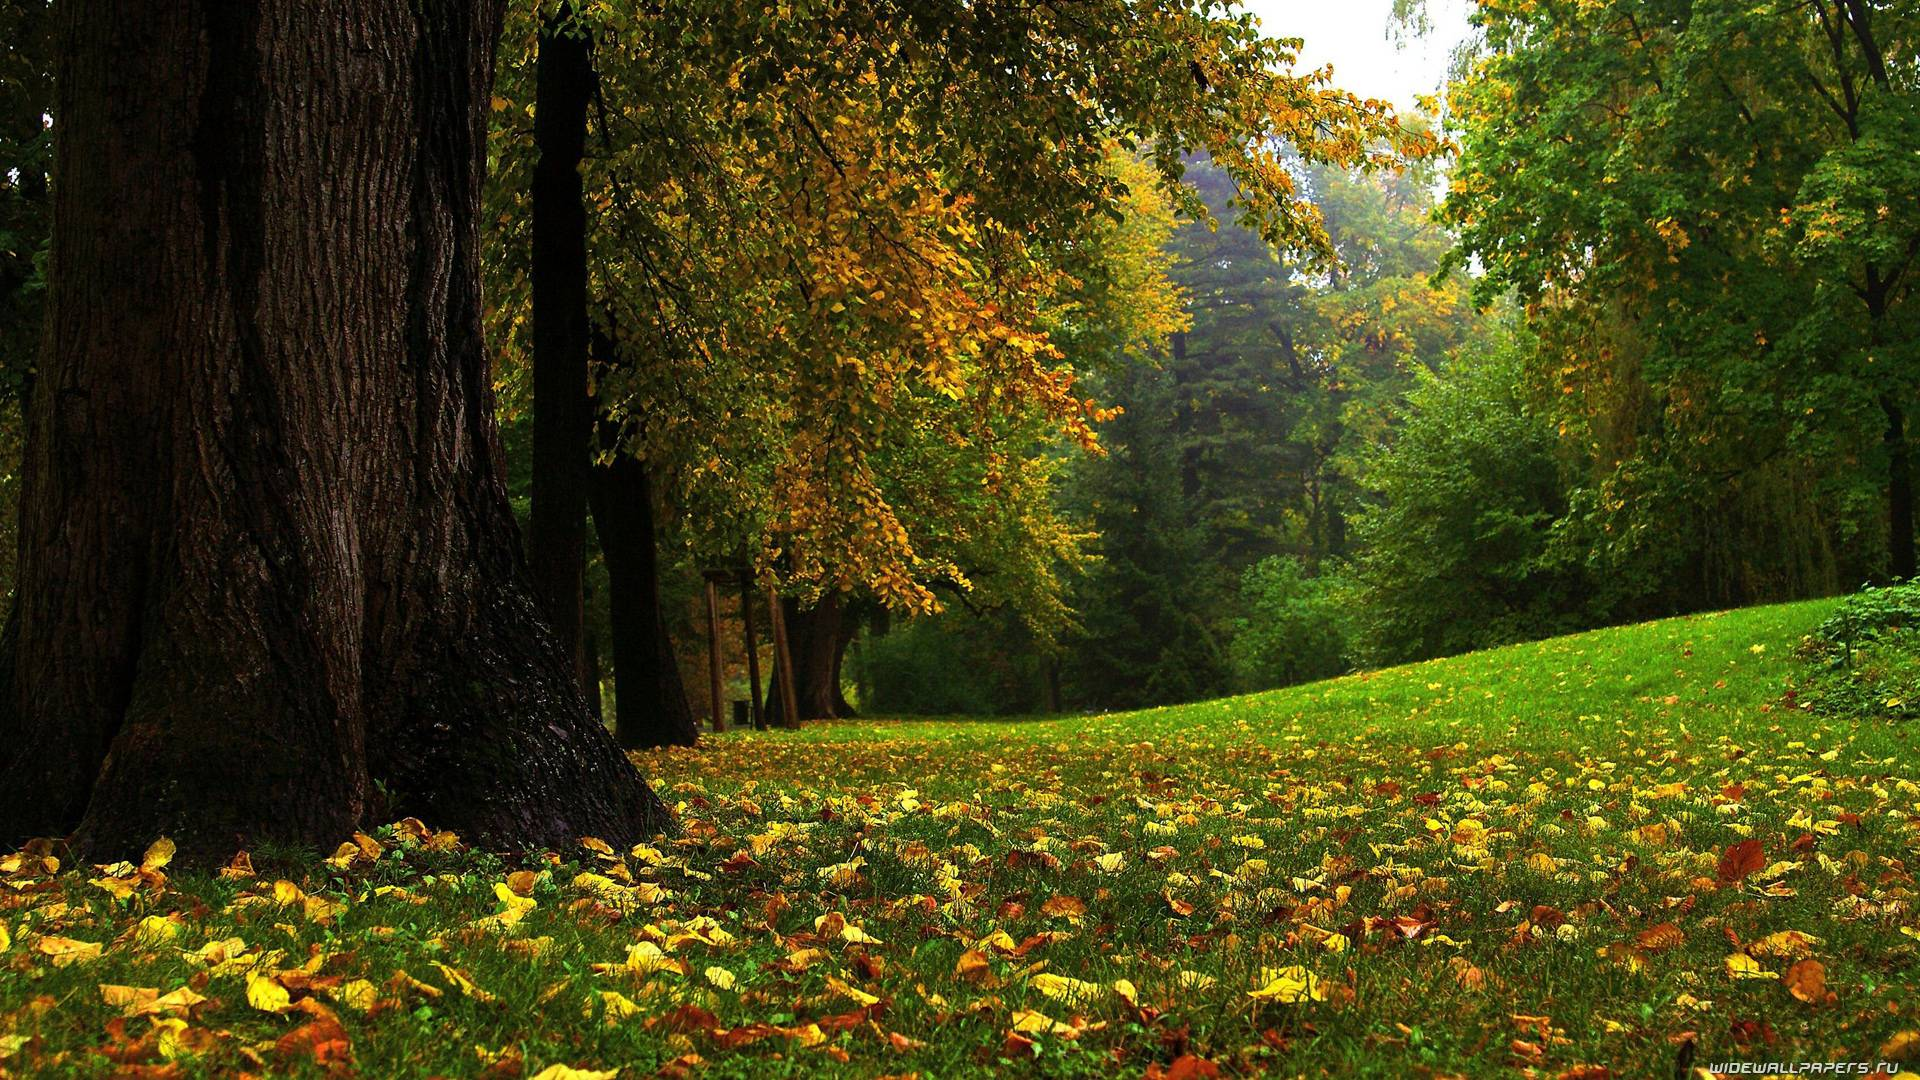 Autumn Backgrounds Desktop 1920x1080